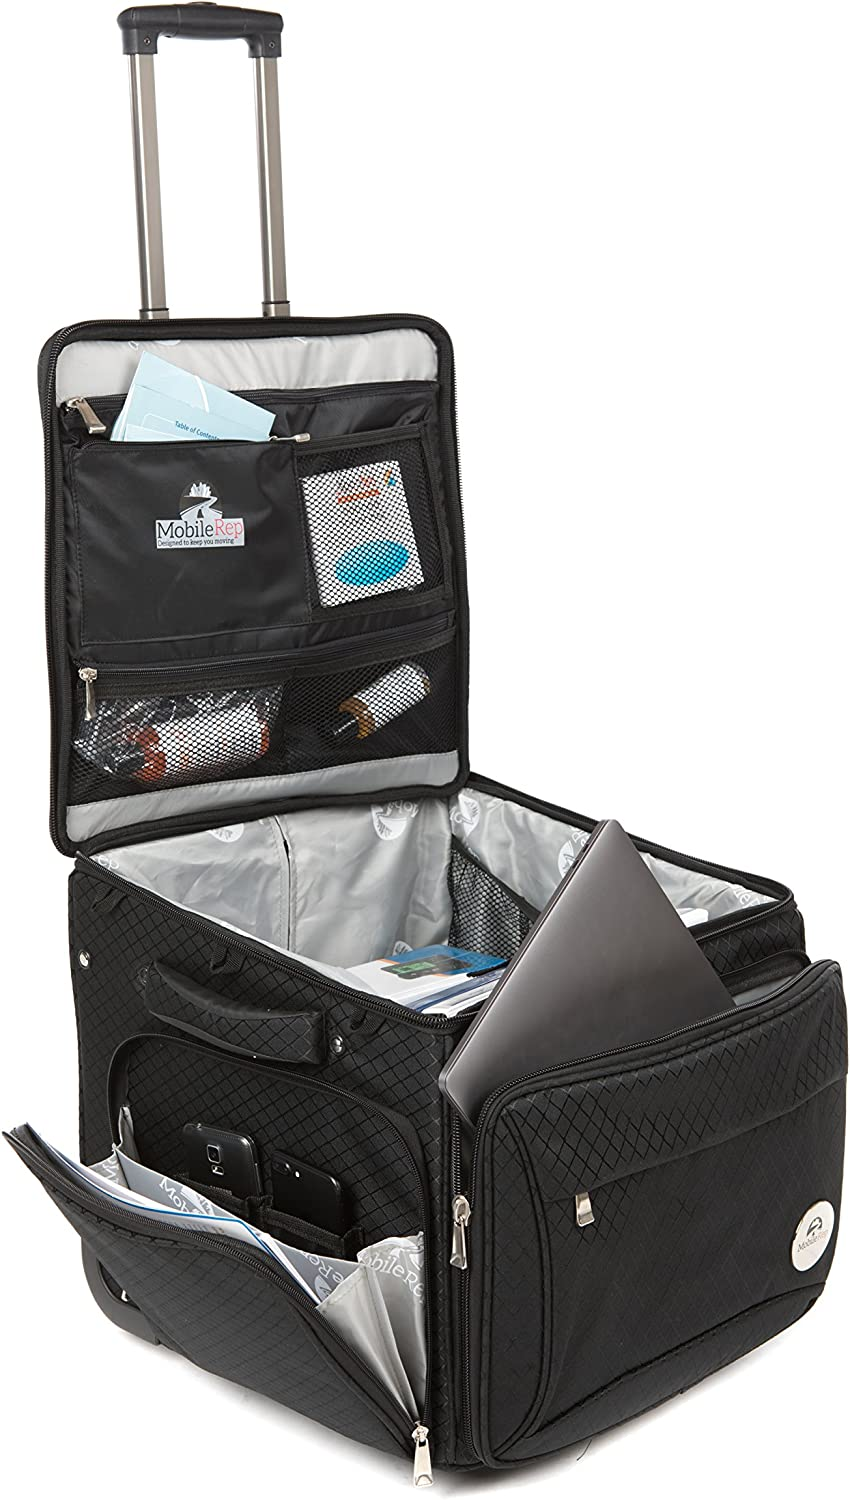 MobileRep RepRoller, Mobile office and sales cart